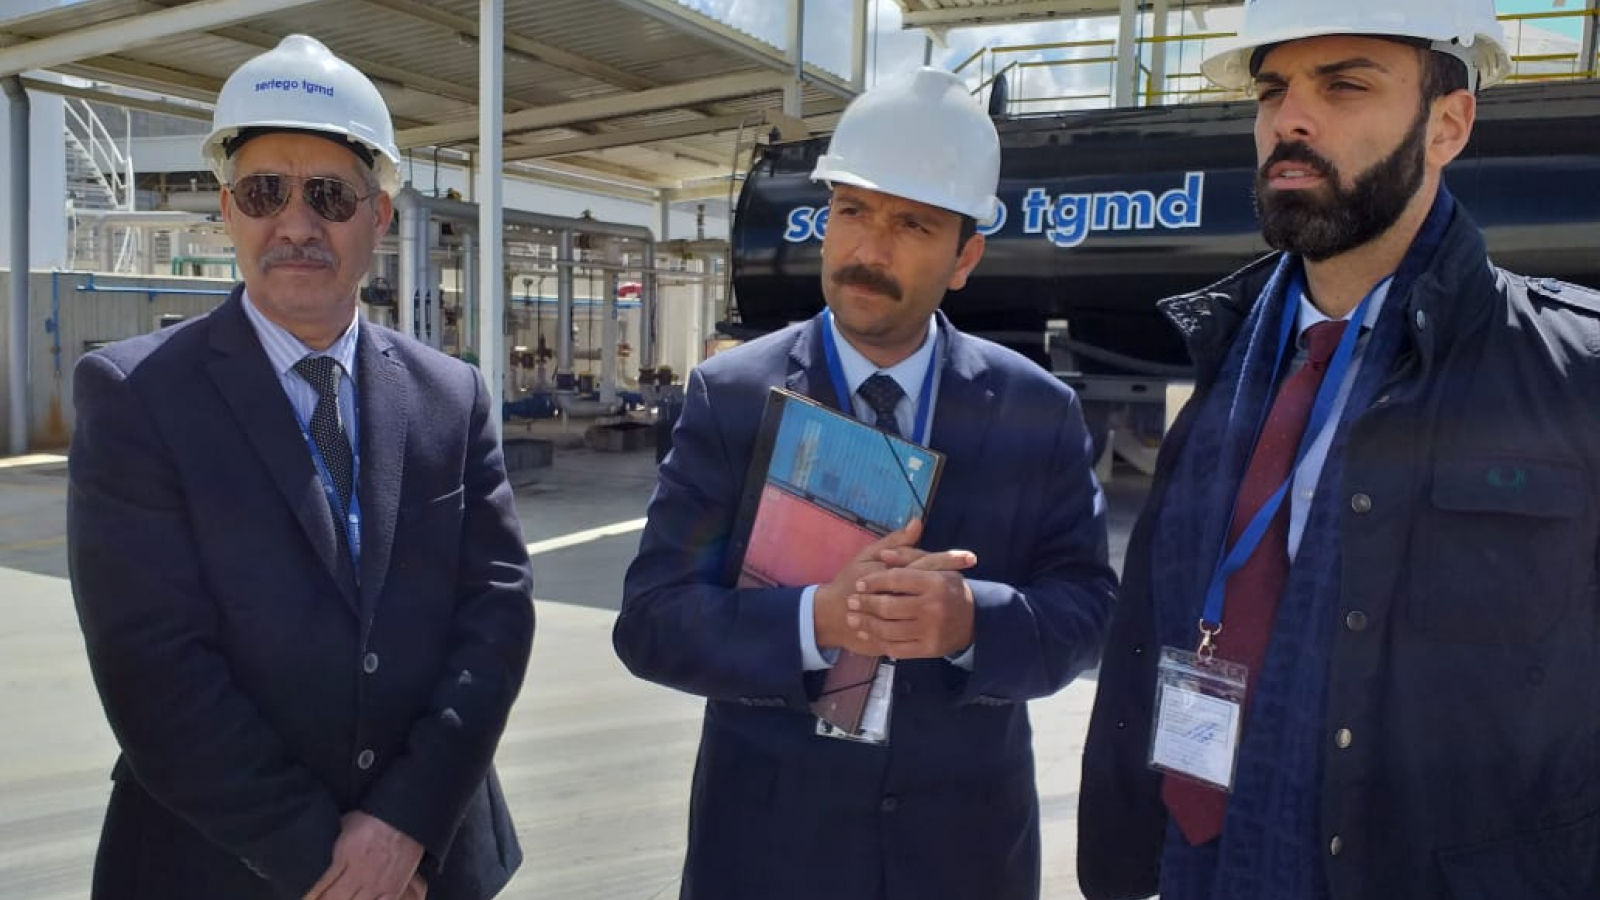 Morocco : Preparatory audit of maritime authorities carried out under EU-funded SAFEMED IV